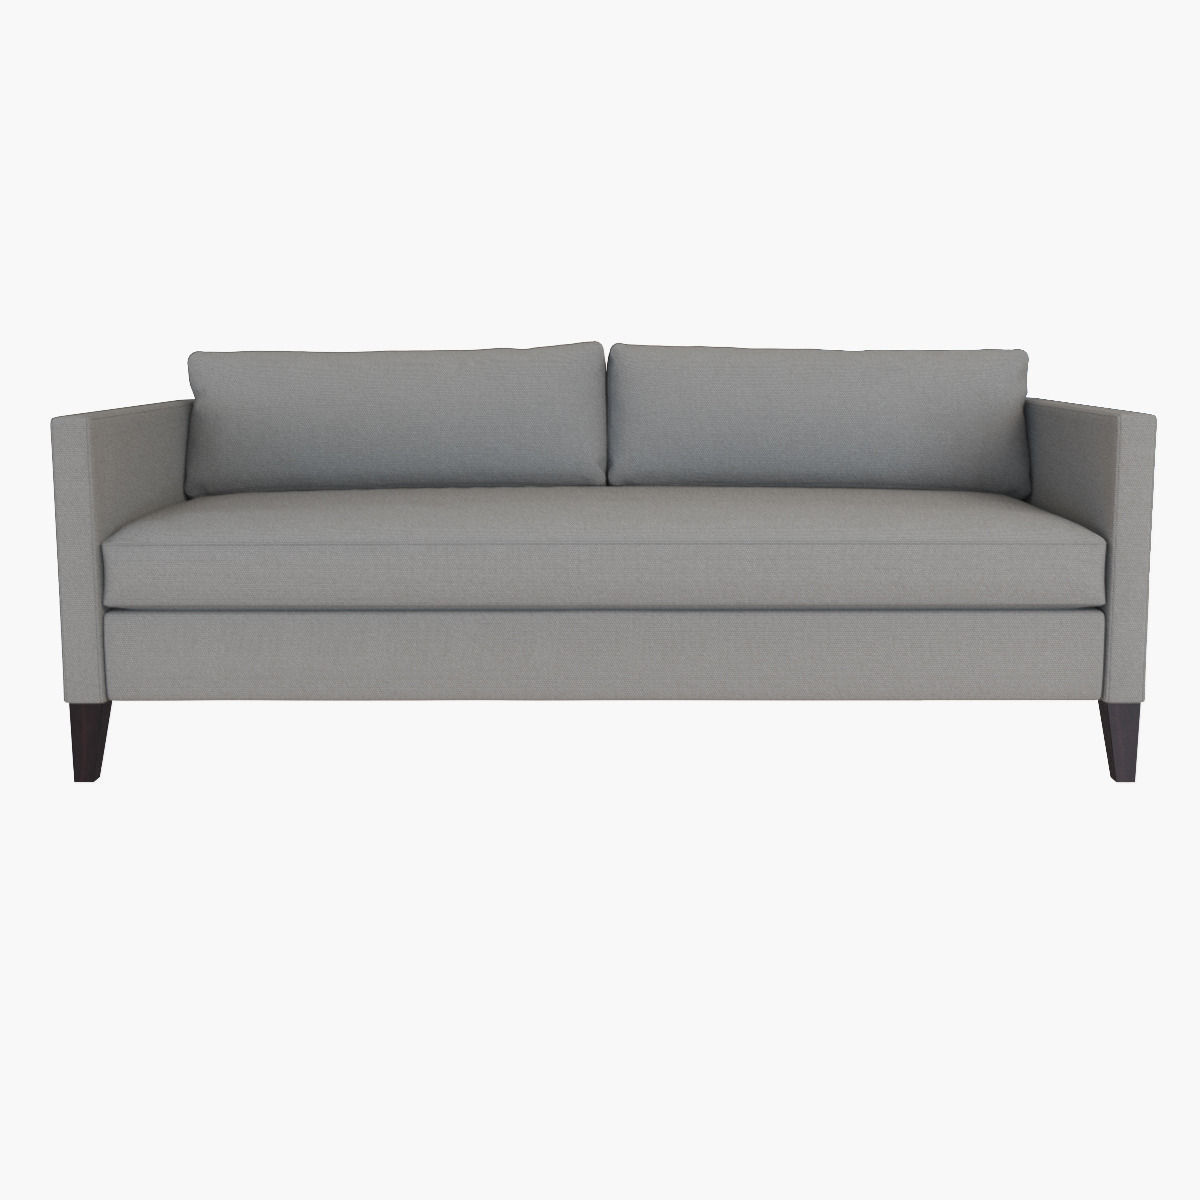 cute macy's furniture sofa picture-New Macy's Furniture sofa Design